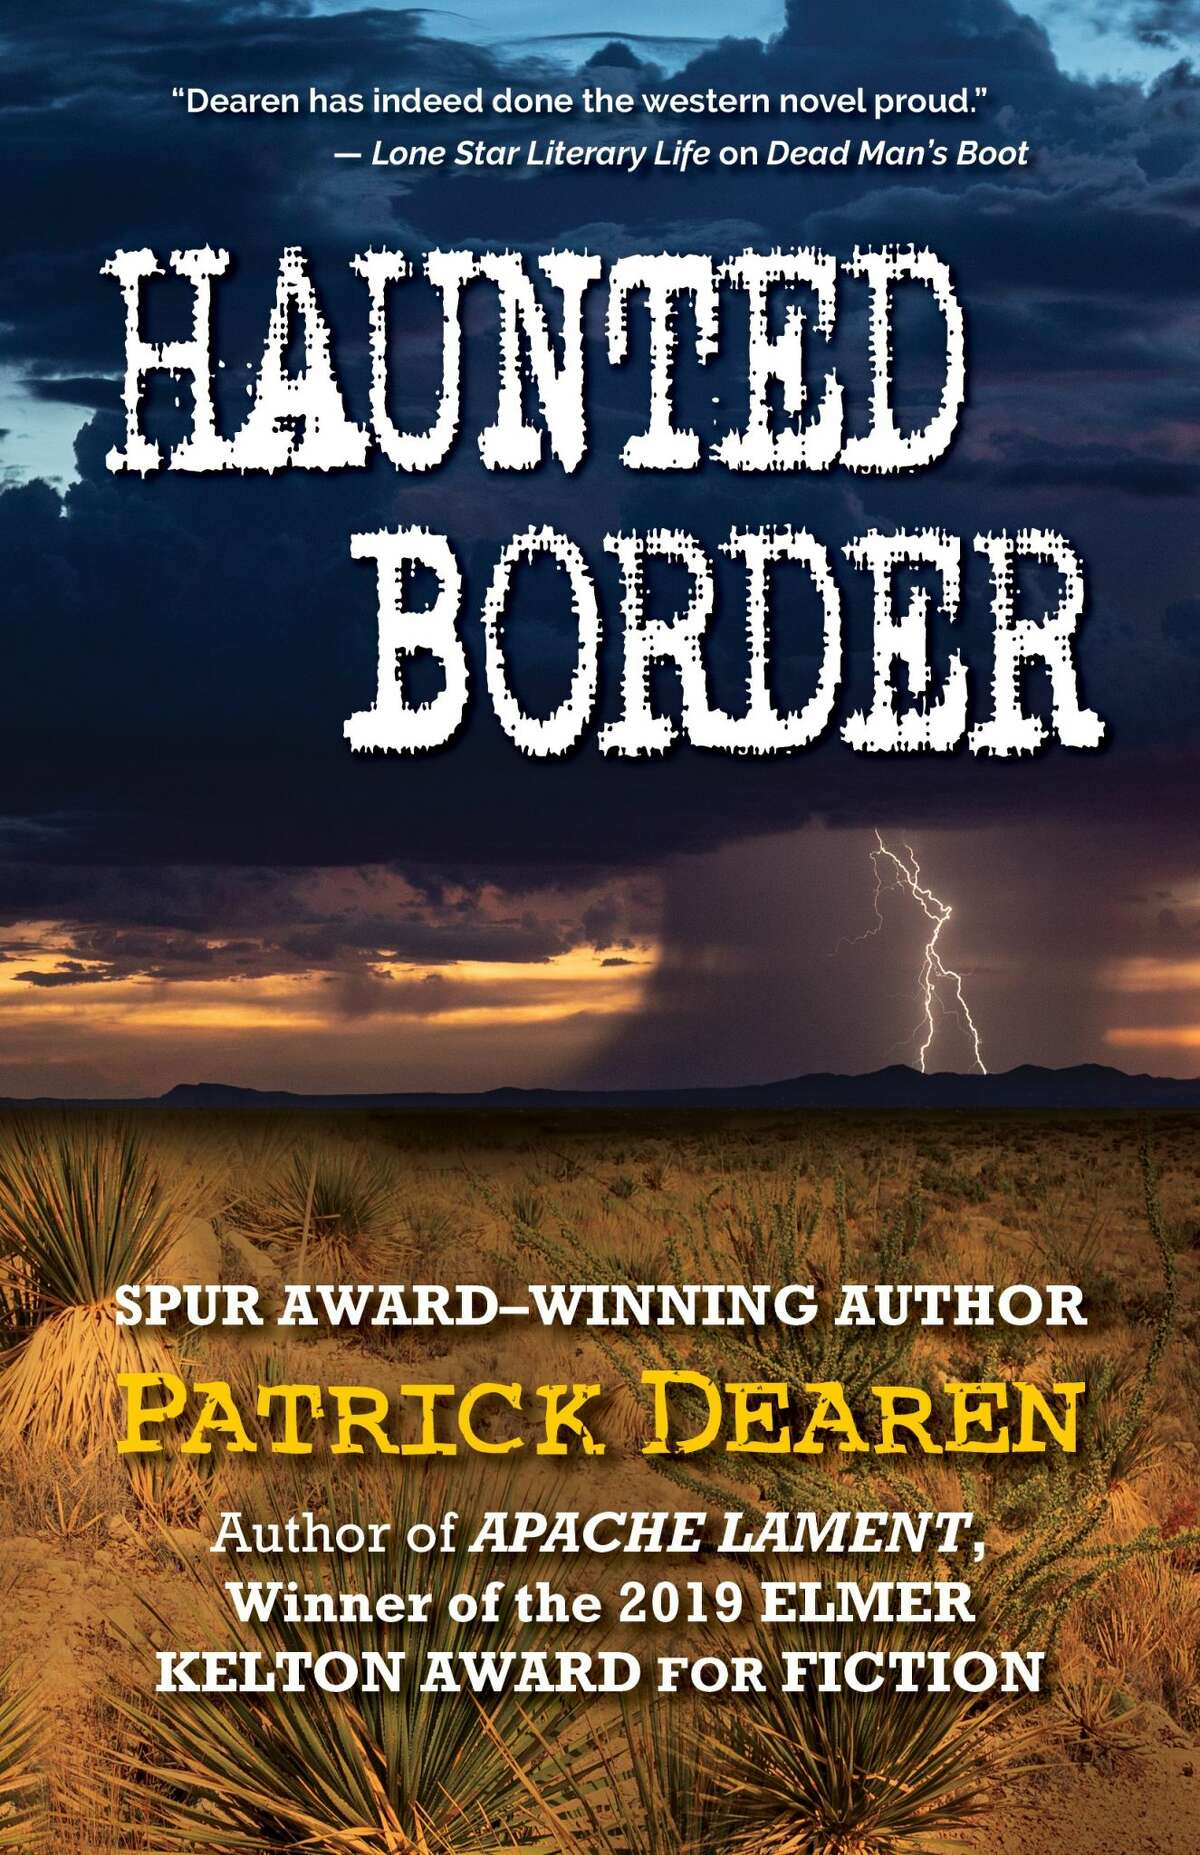 """Midland author Patrick Dearen's new novel, """"Haunted Border,"""" has just been published in hardcover by Five Star."""